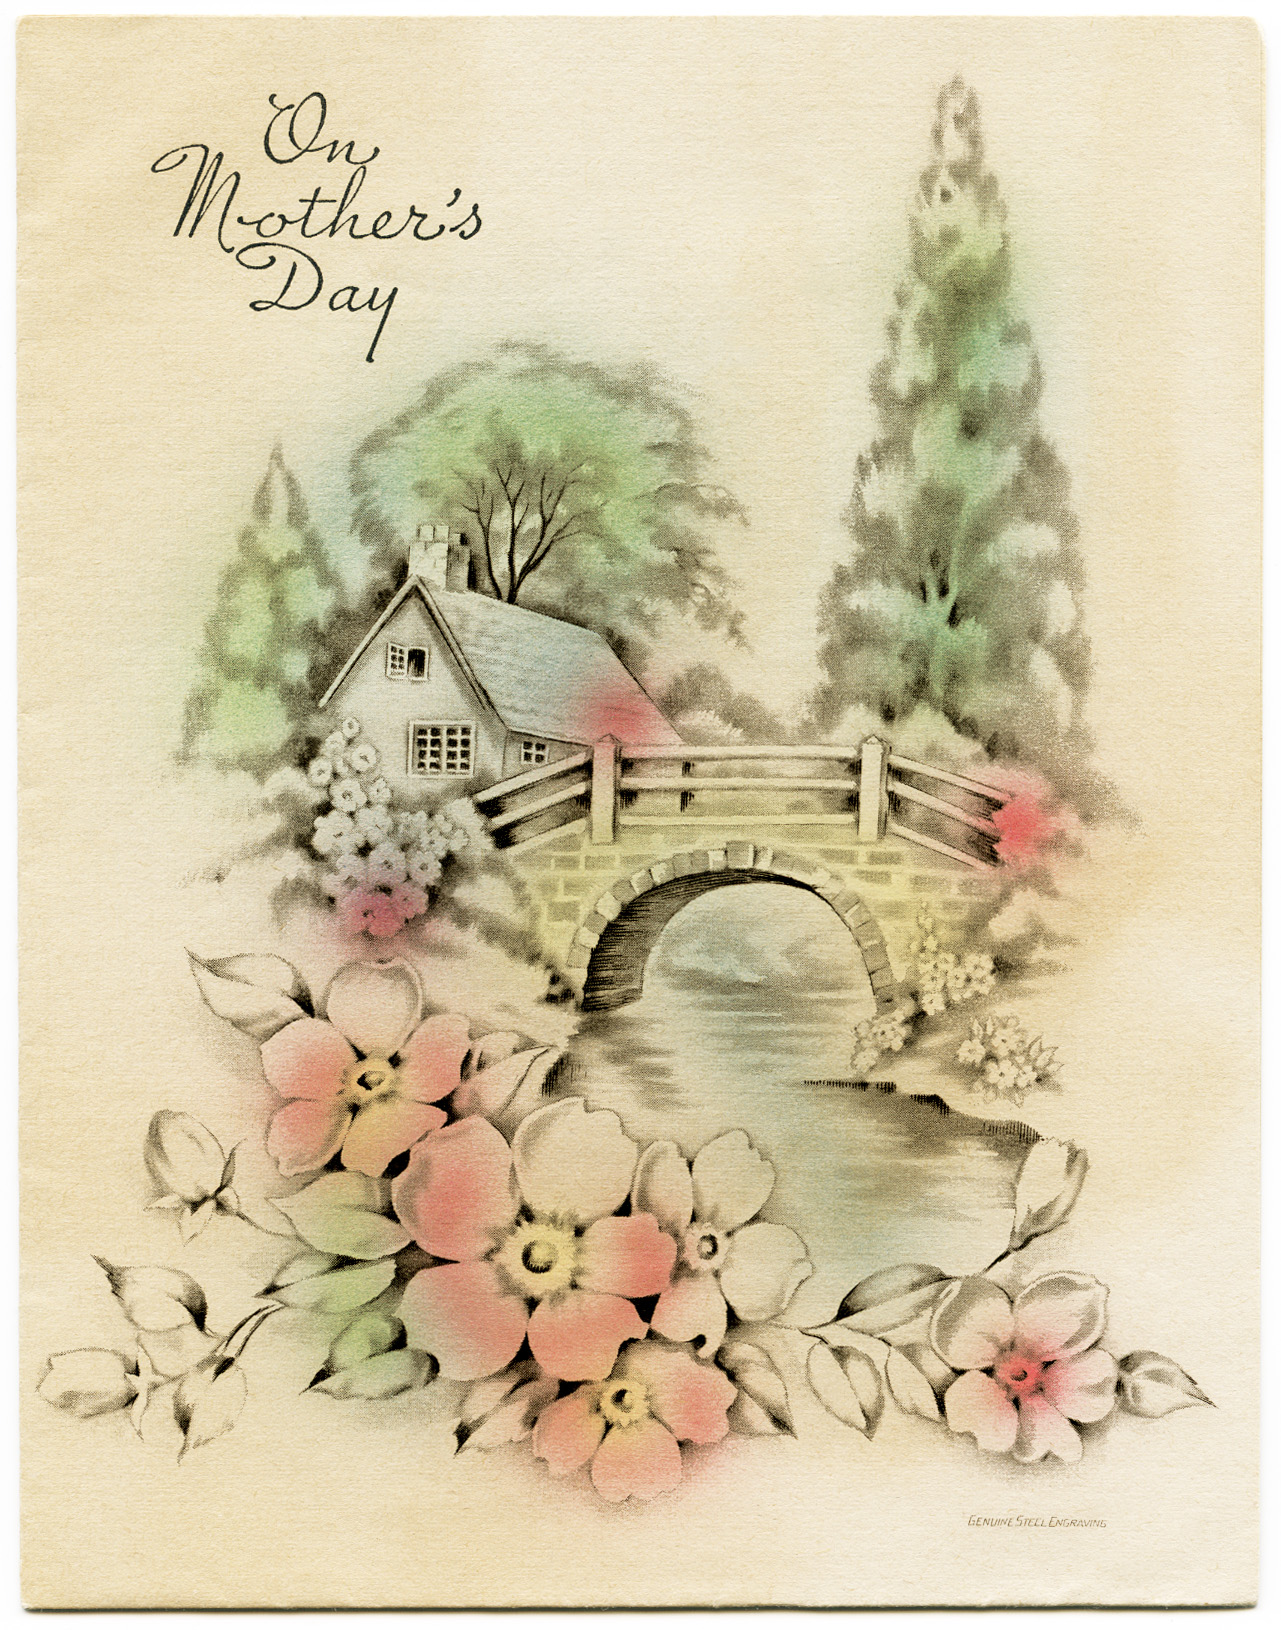 Greeting cards old design shop blog part 3 vintage mothers day scenic card kristyandbryce Images